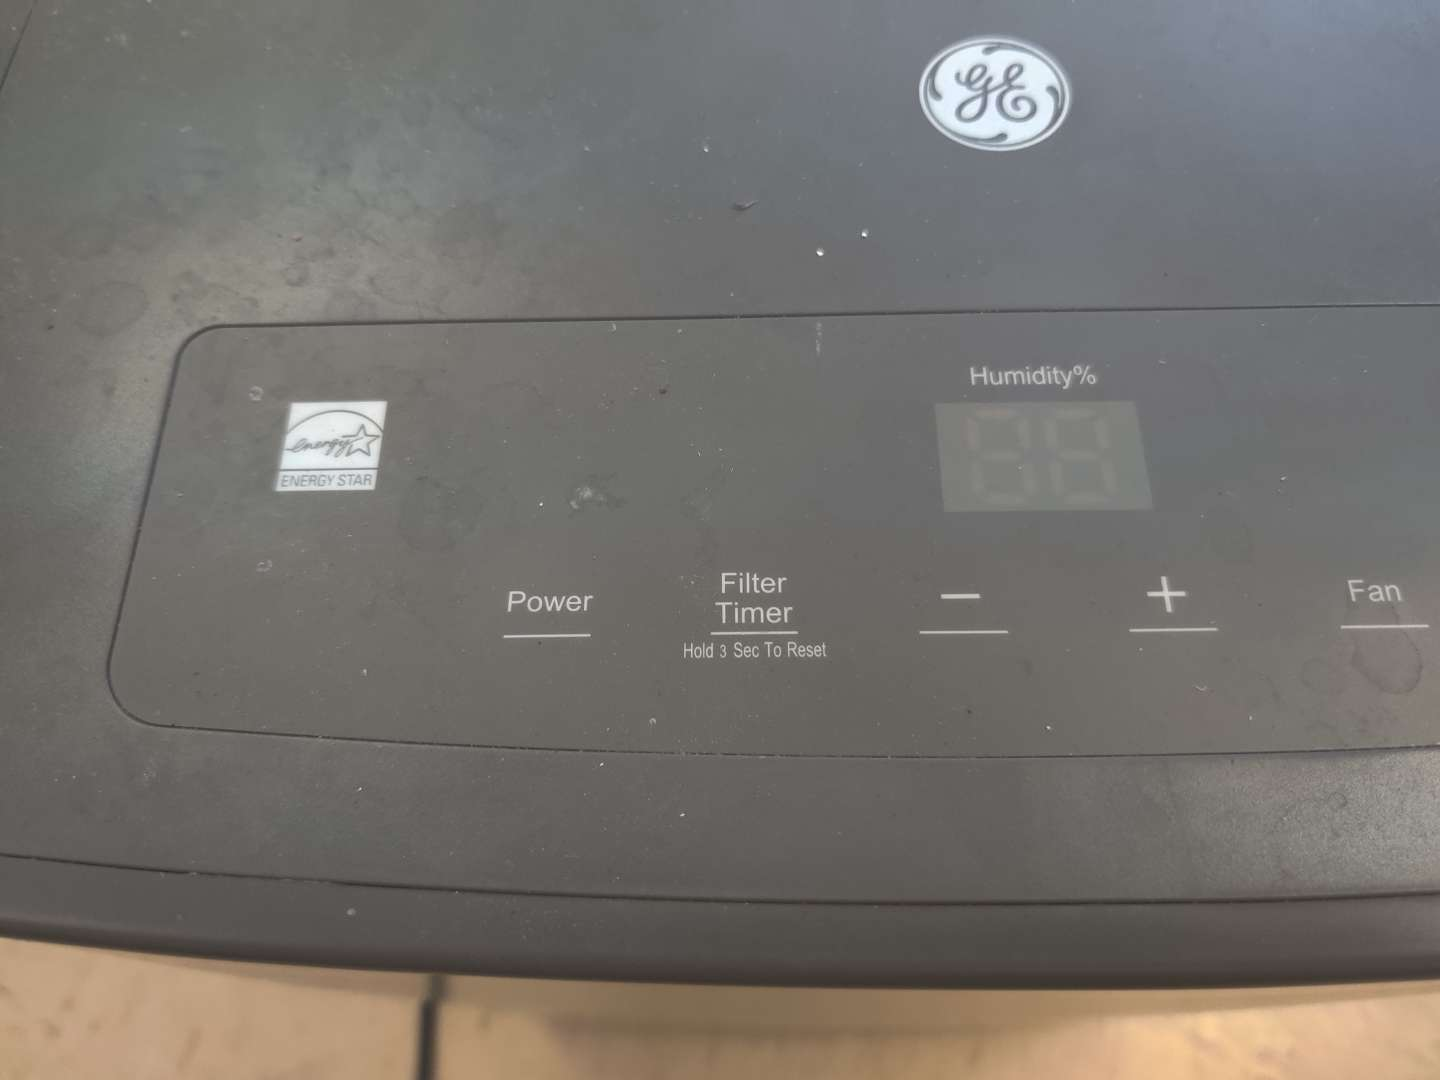 # 182 general electric dehumidifier energy saver works great